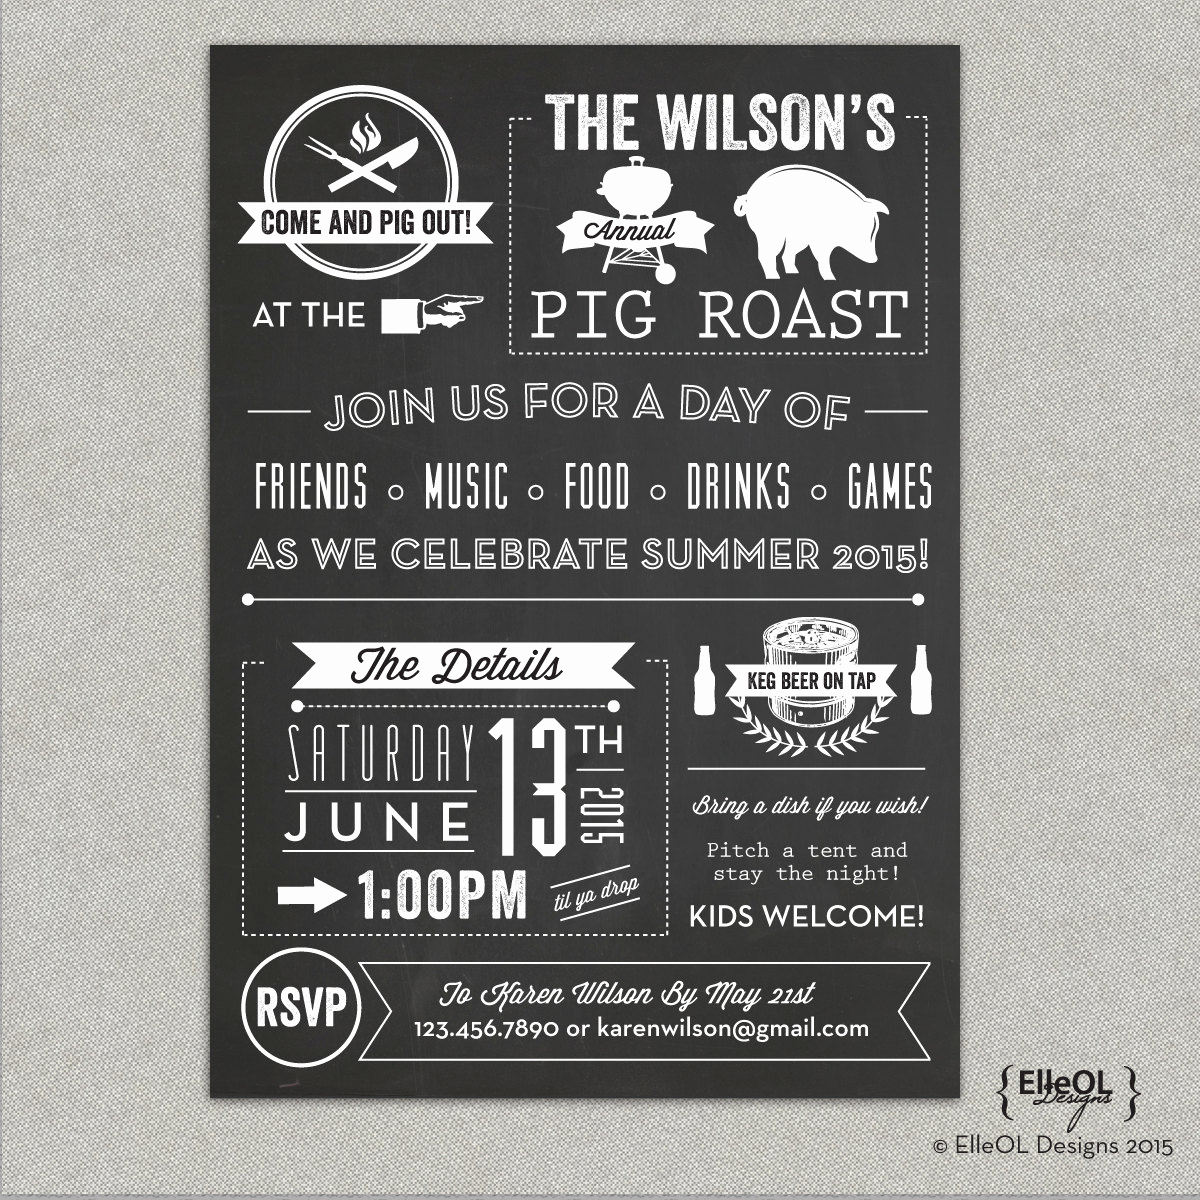 Pig Roast Invitation Template Free Luxury Chalkboard Pig Roast Party Invitation Birthday Summer